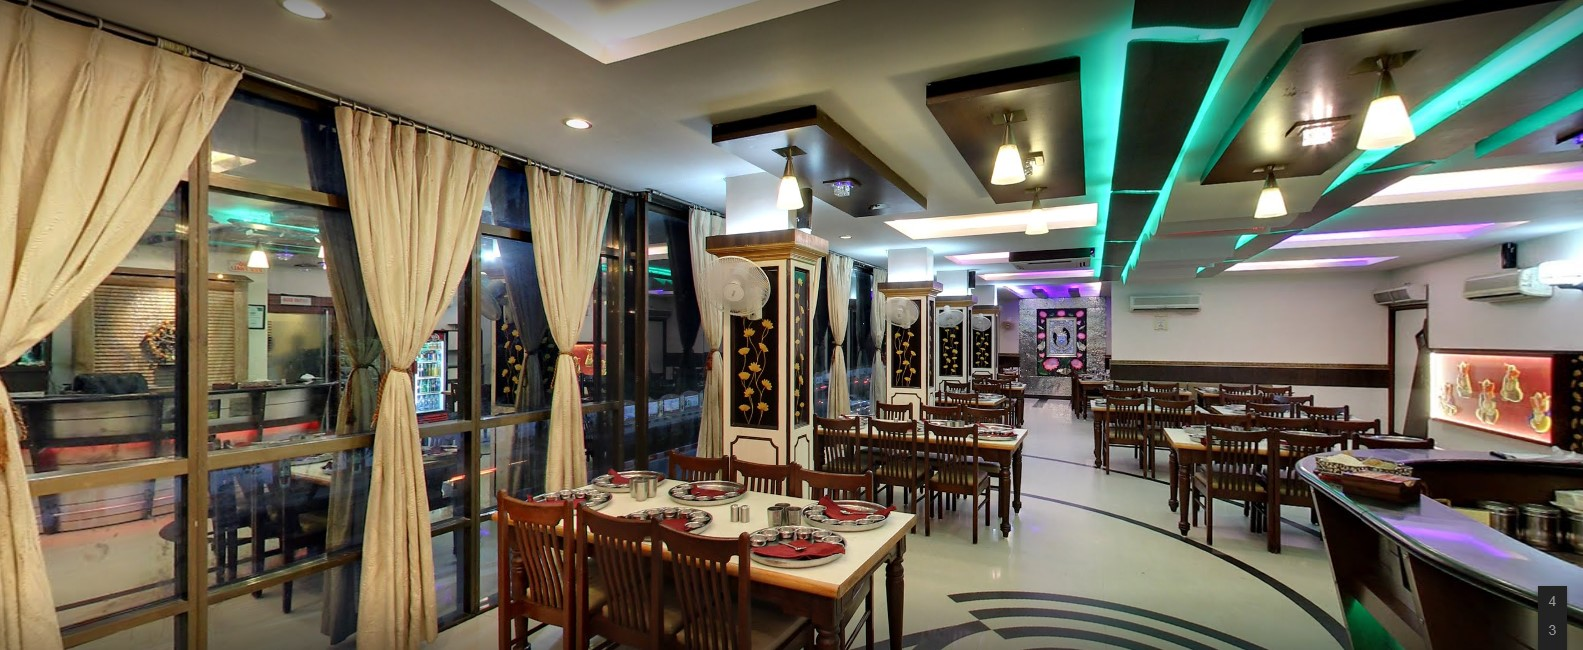 Best Budget Restaurants in Udaipur